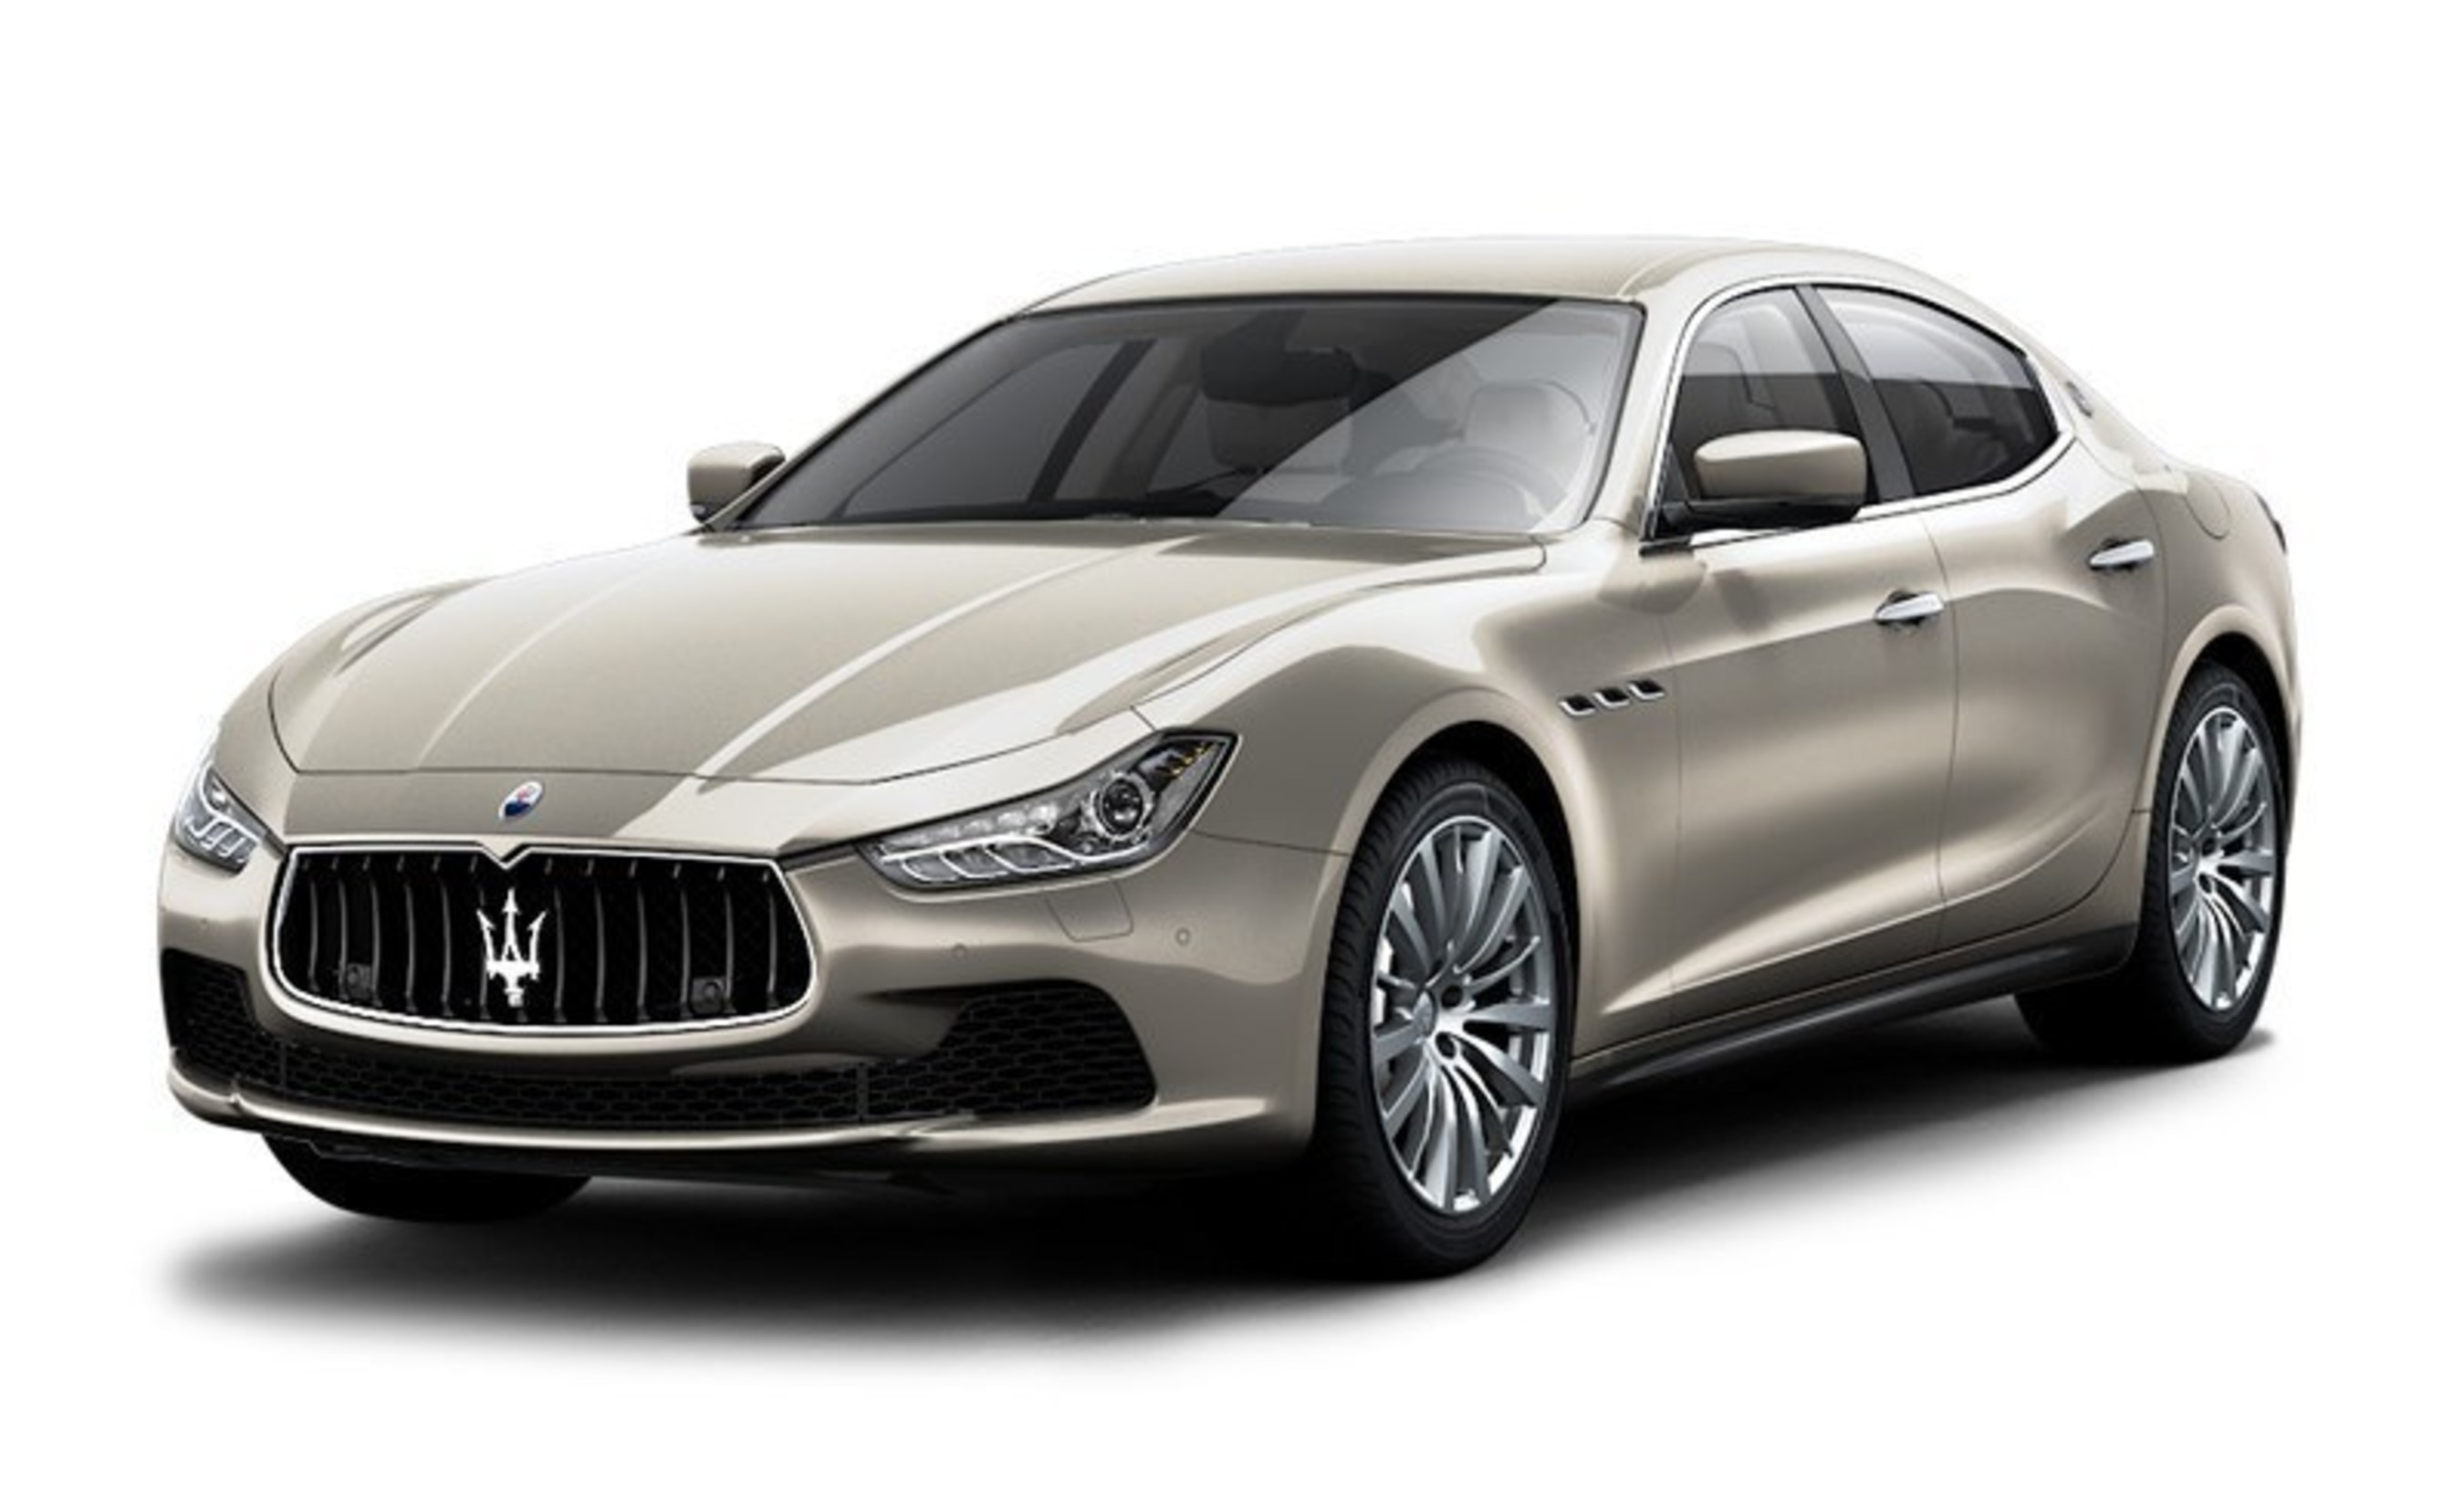 One lucky player will walk away holding the keys to a brand new 2015 Maserati Ghibli.